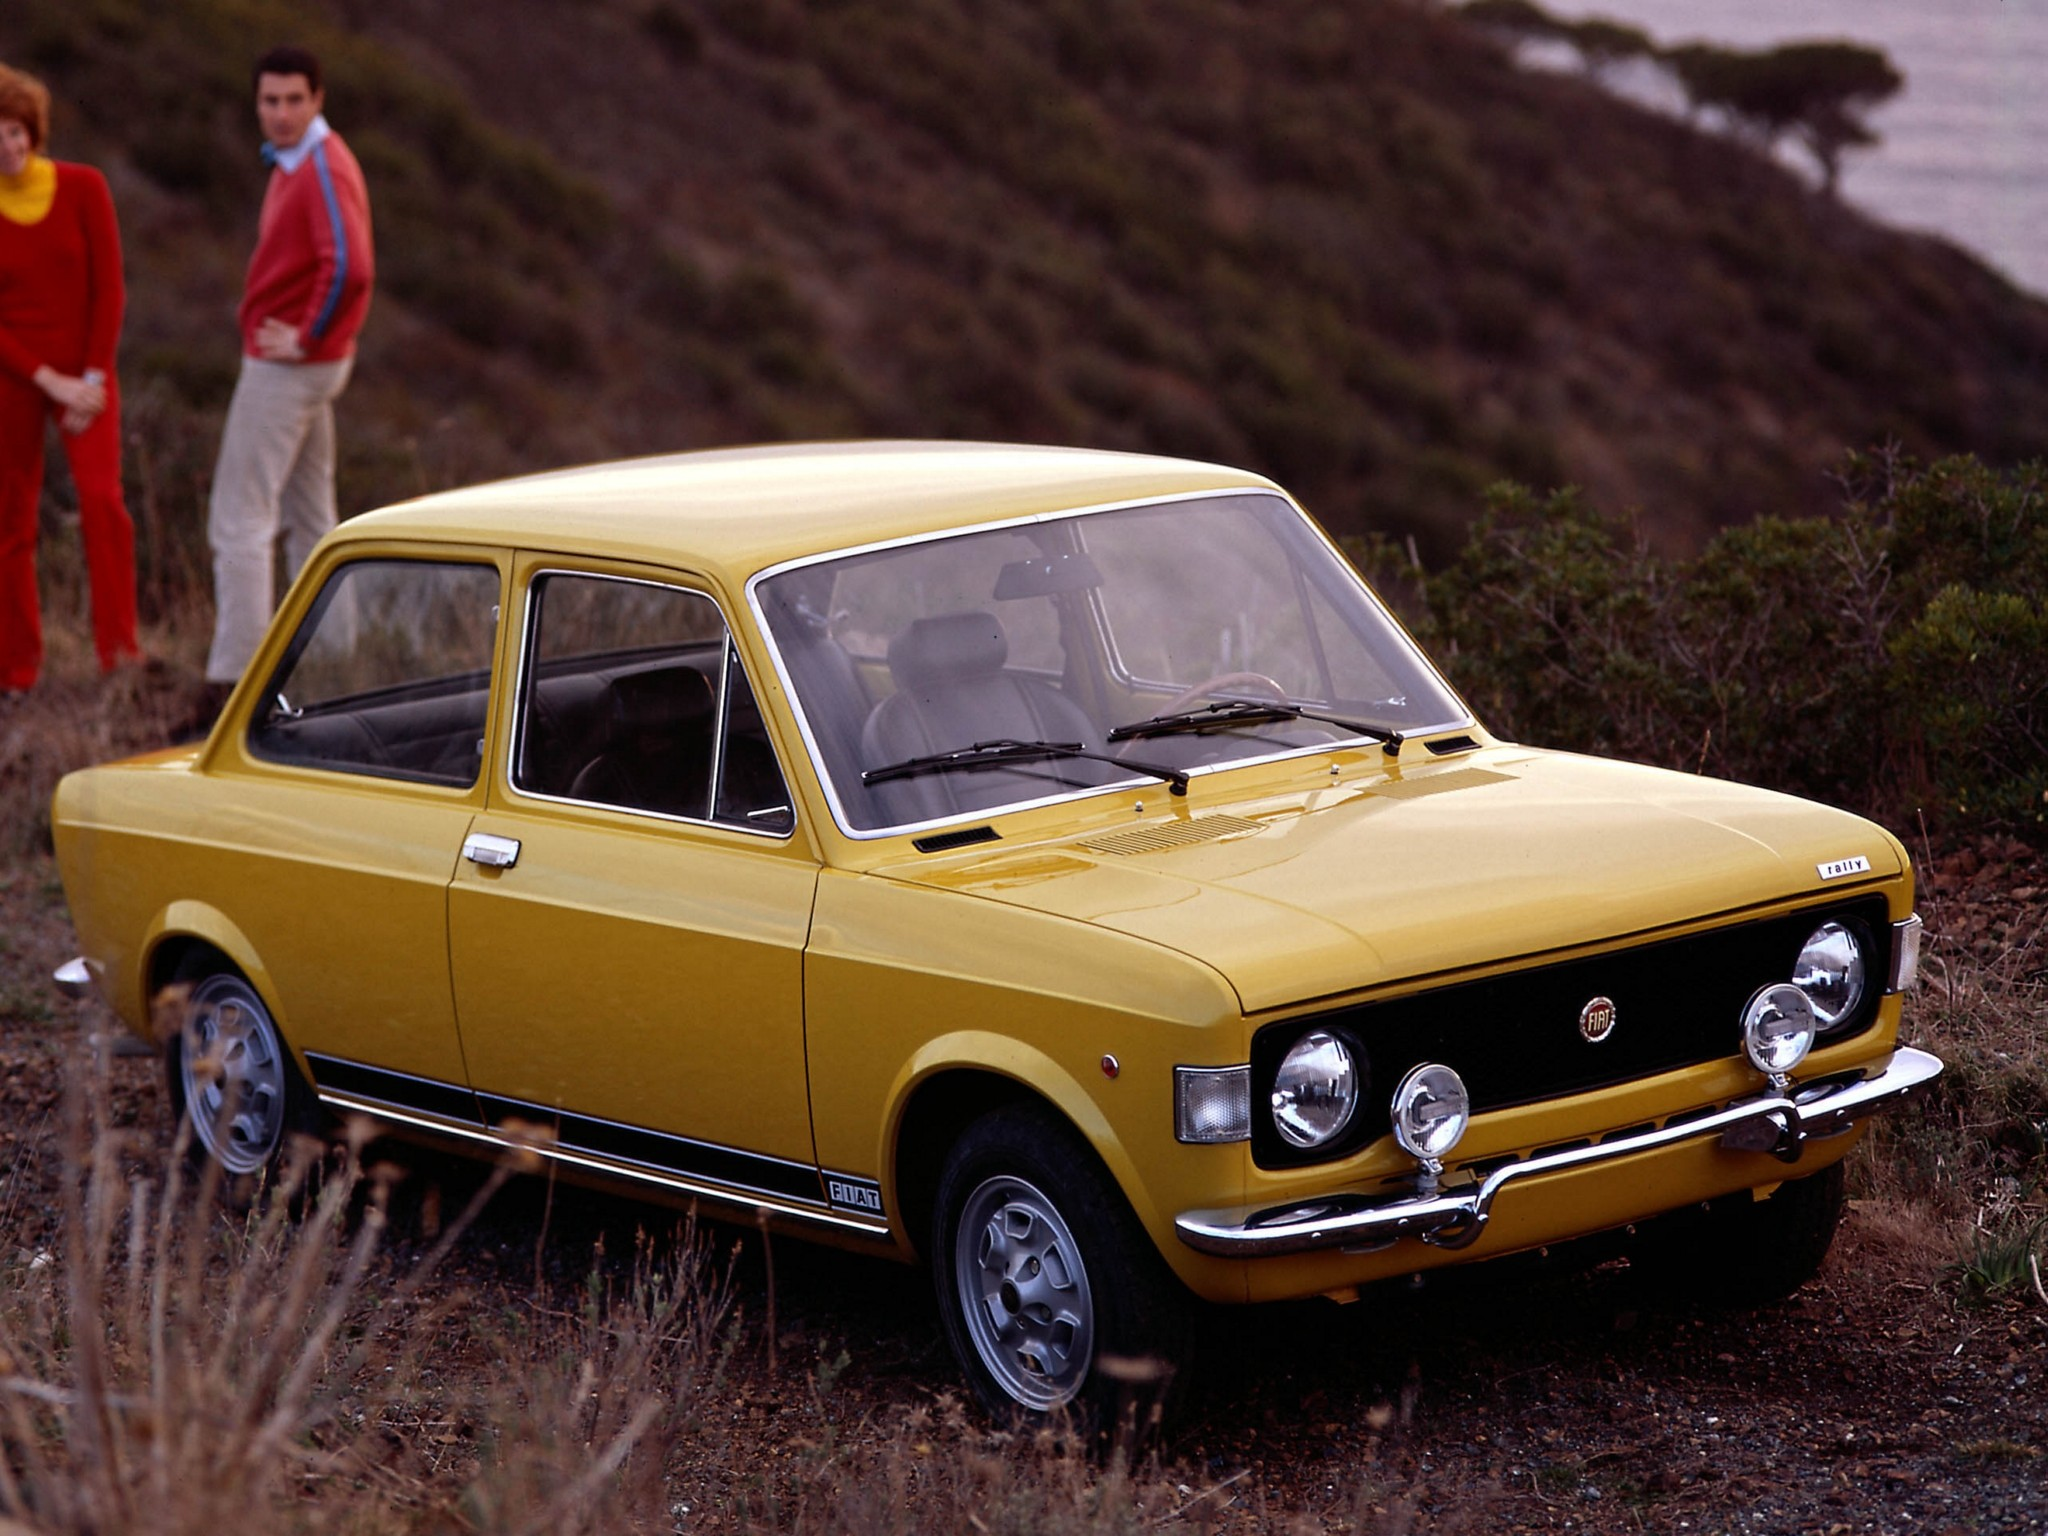 Fiat Rally on 1973 Fiat 128 Sport Coupe